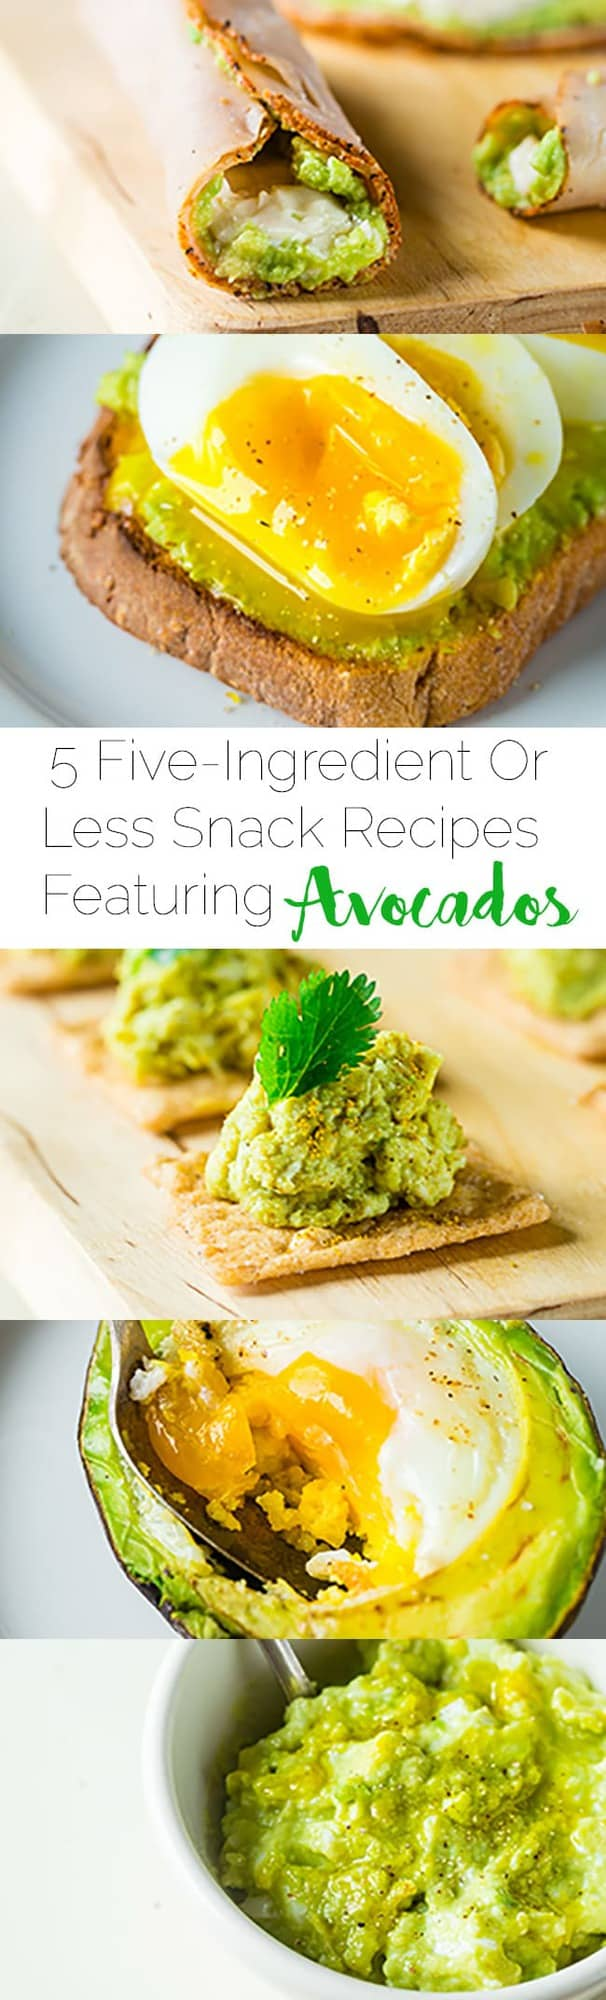 5 Five-Ingredient or Less Snack Recipes with Avocados - A list of 5 healthy snack recipes that feature avocado and have 5 ingredients or less! A great resource to find easy, simple snack ideas in one place! | Foodfaithfitness.com | @FoodFaithFit